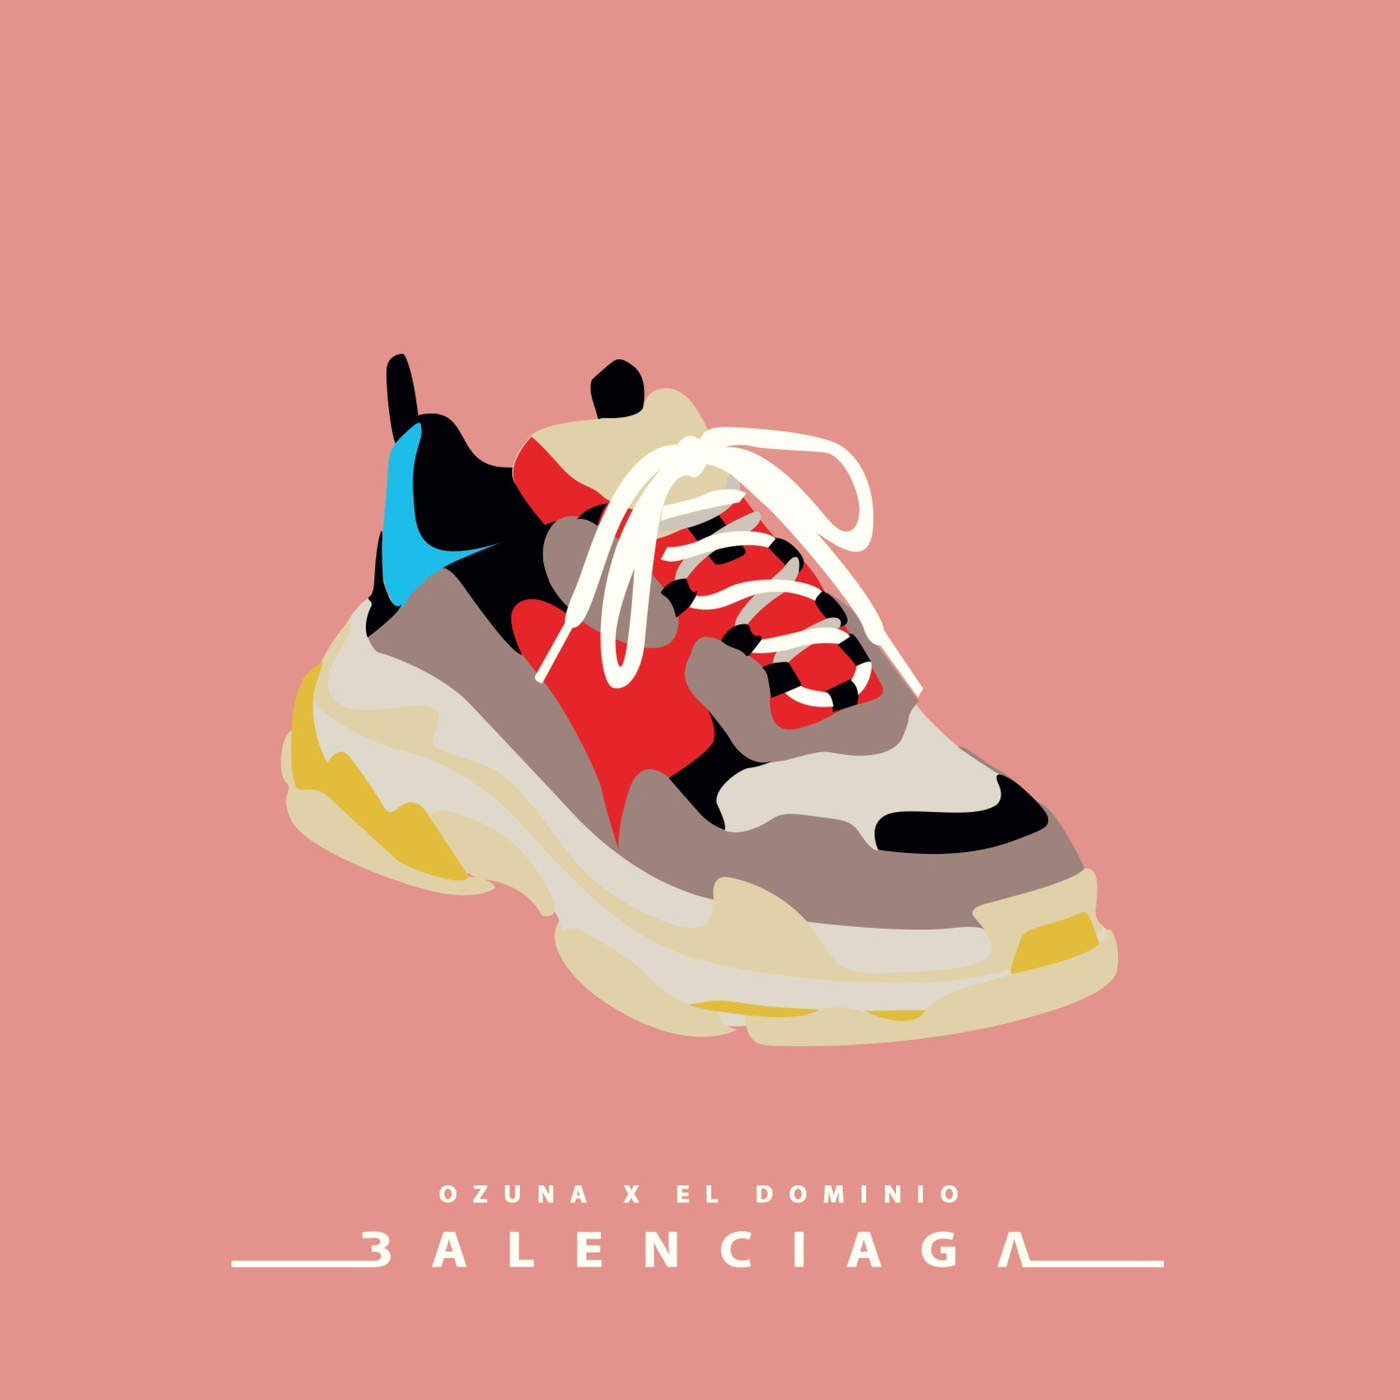 "Ozuna X Ele A El Dominio  Balenciaga Video Oficial is part of Sneaker art - Ya pueden ver el nuevo video de Ozuna X Ele A El Dominio ""Balenciaga"" por www guayafull com"